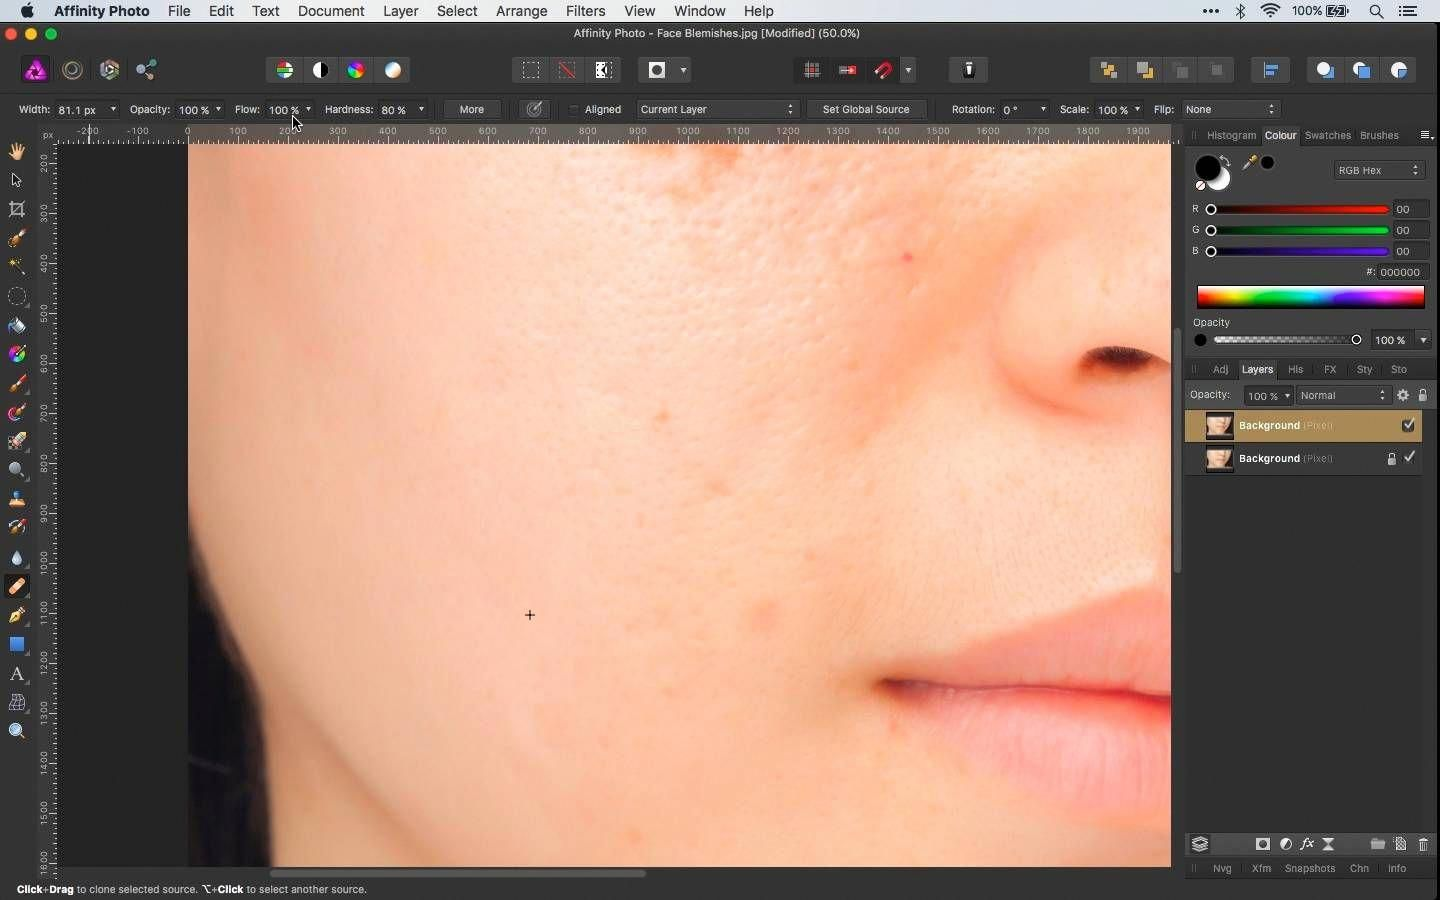 How To Remove Skin Blemishes In Affinity Photo